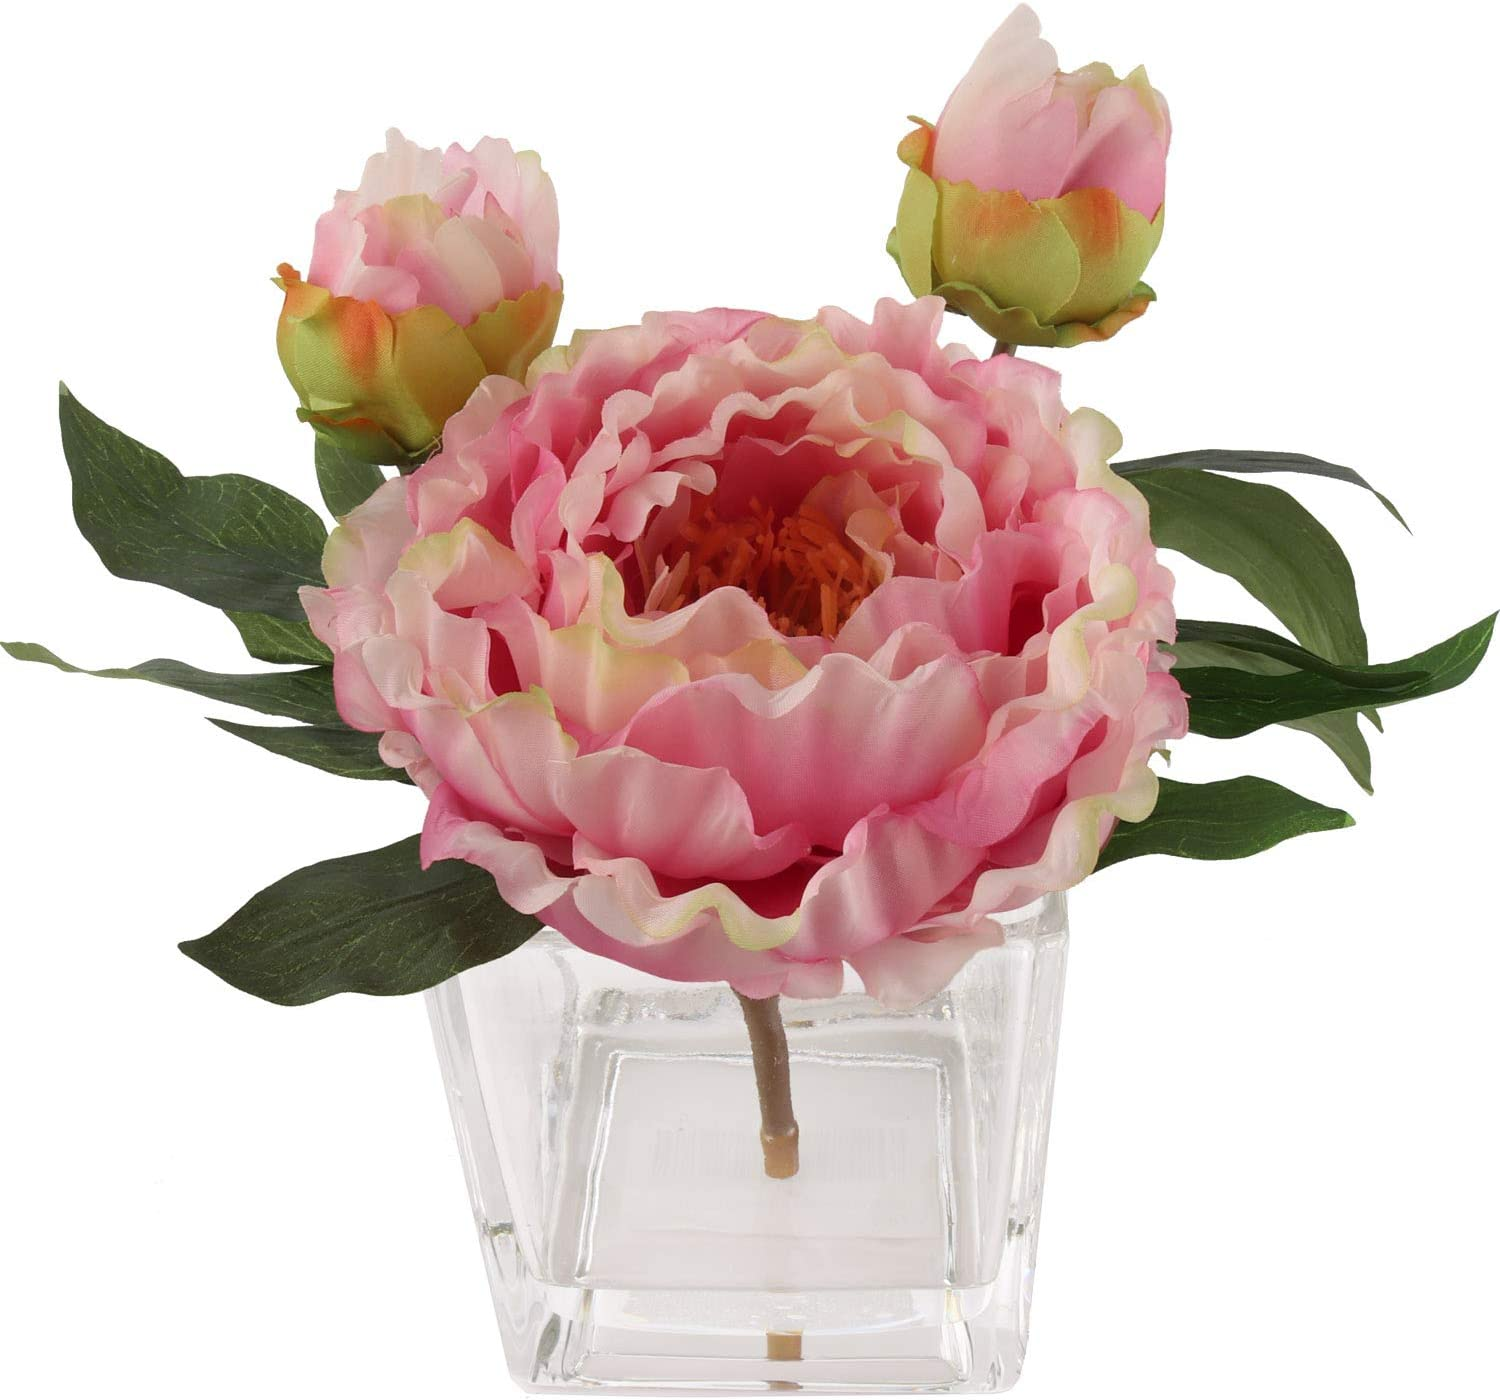 Handcrafted Artificial Peony Silk Flower Arrangement in Vase | Real Look Mauve Silk Perennial Peonies | Layers of Soft Rose-Color Petals in Hues of Mauve and Pink Petals for a Beautiful, Natural Look